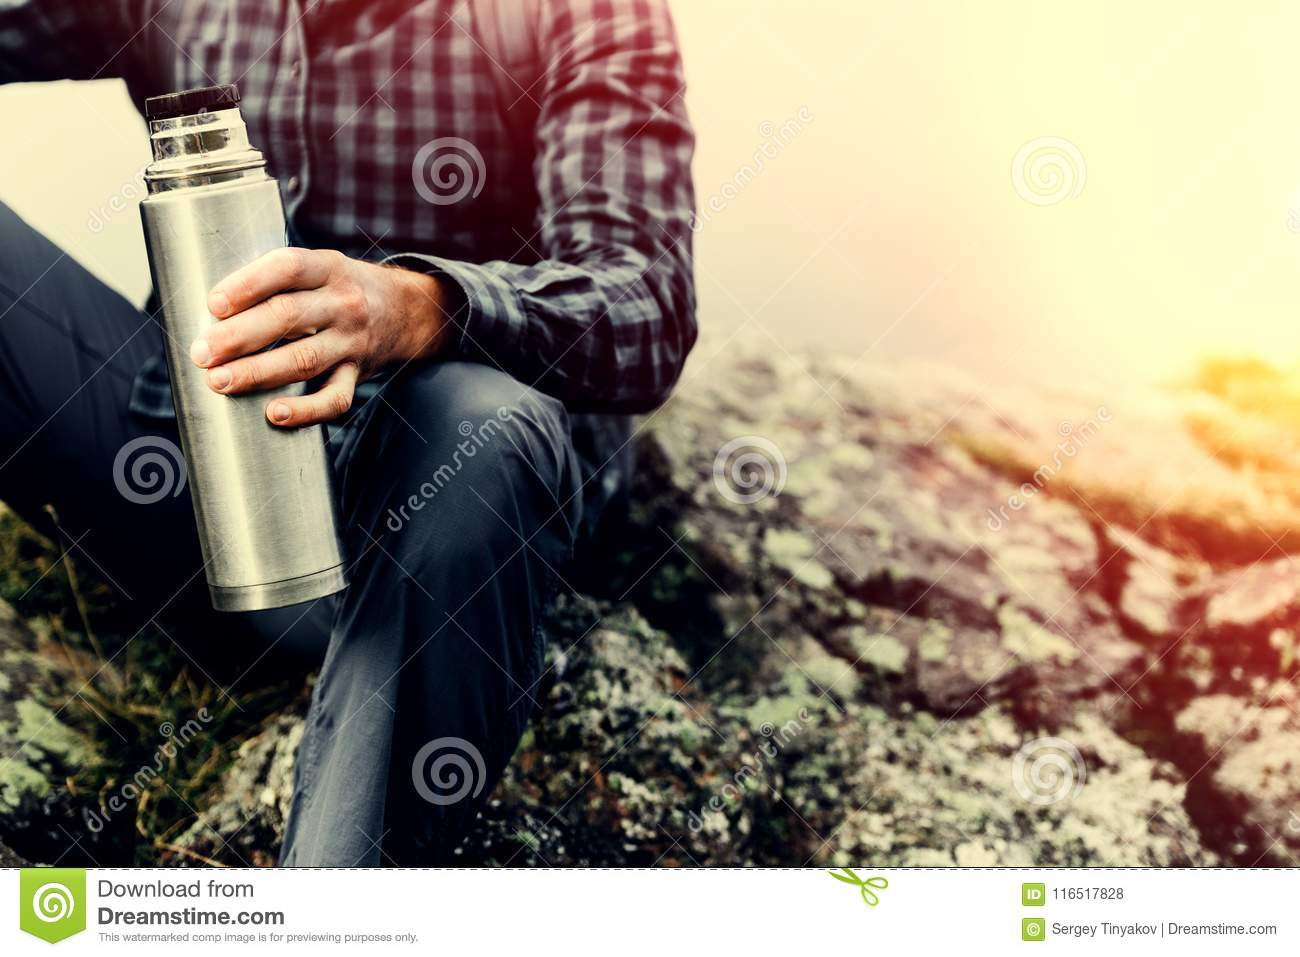 Hiking Adventure Tourism Concept. Unrecognizable Hiker Man Holding Thermos In His Hand, Close-up Toned Image